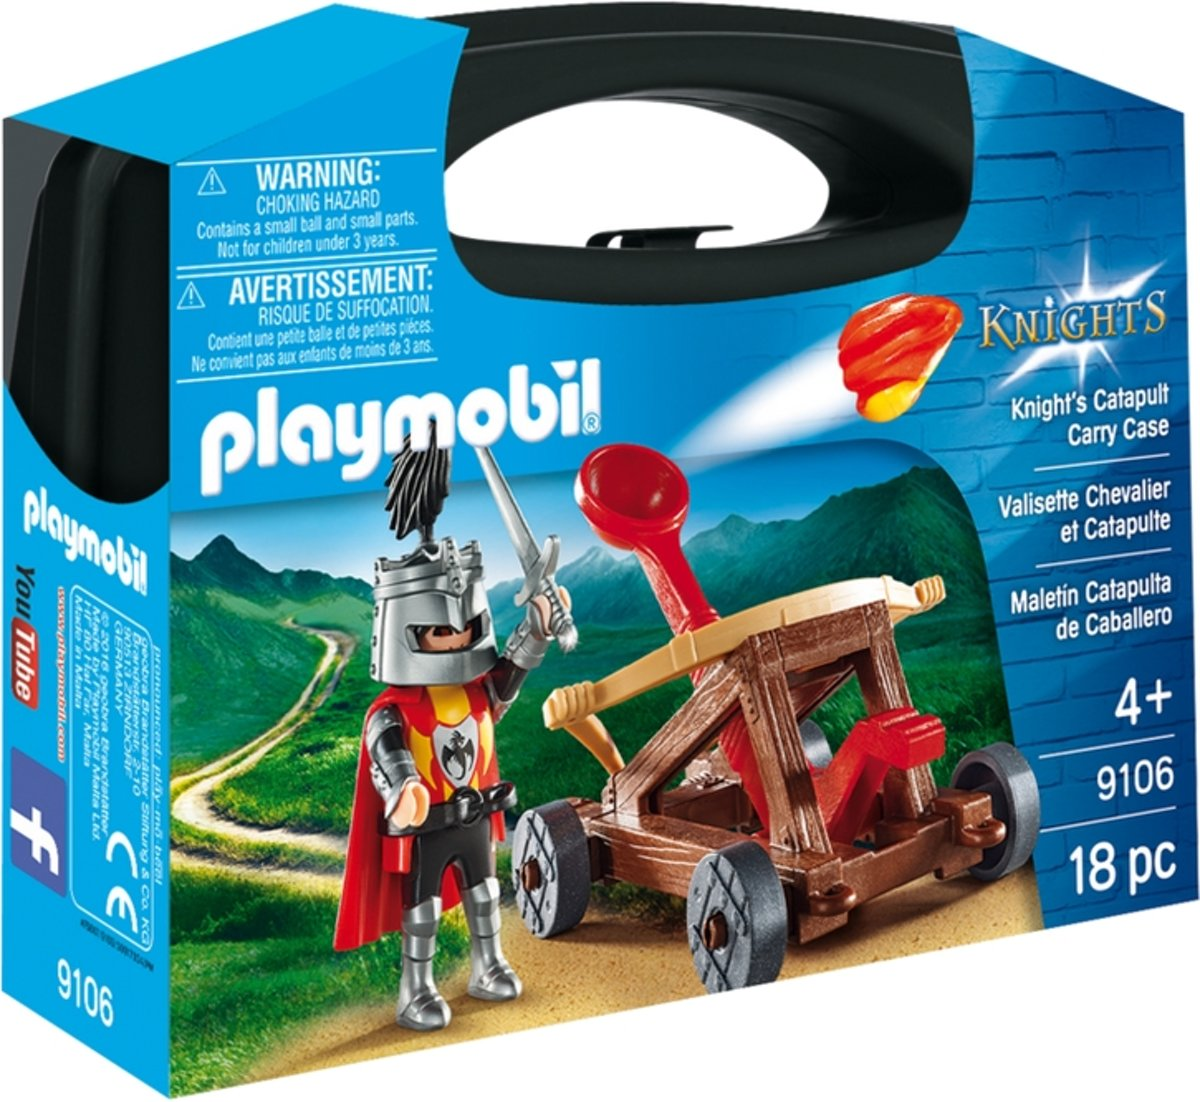 Playmobil 9106 Knights Catapult Carry Case